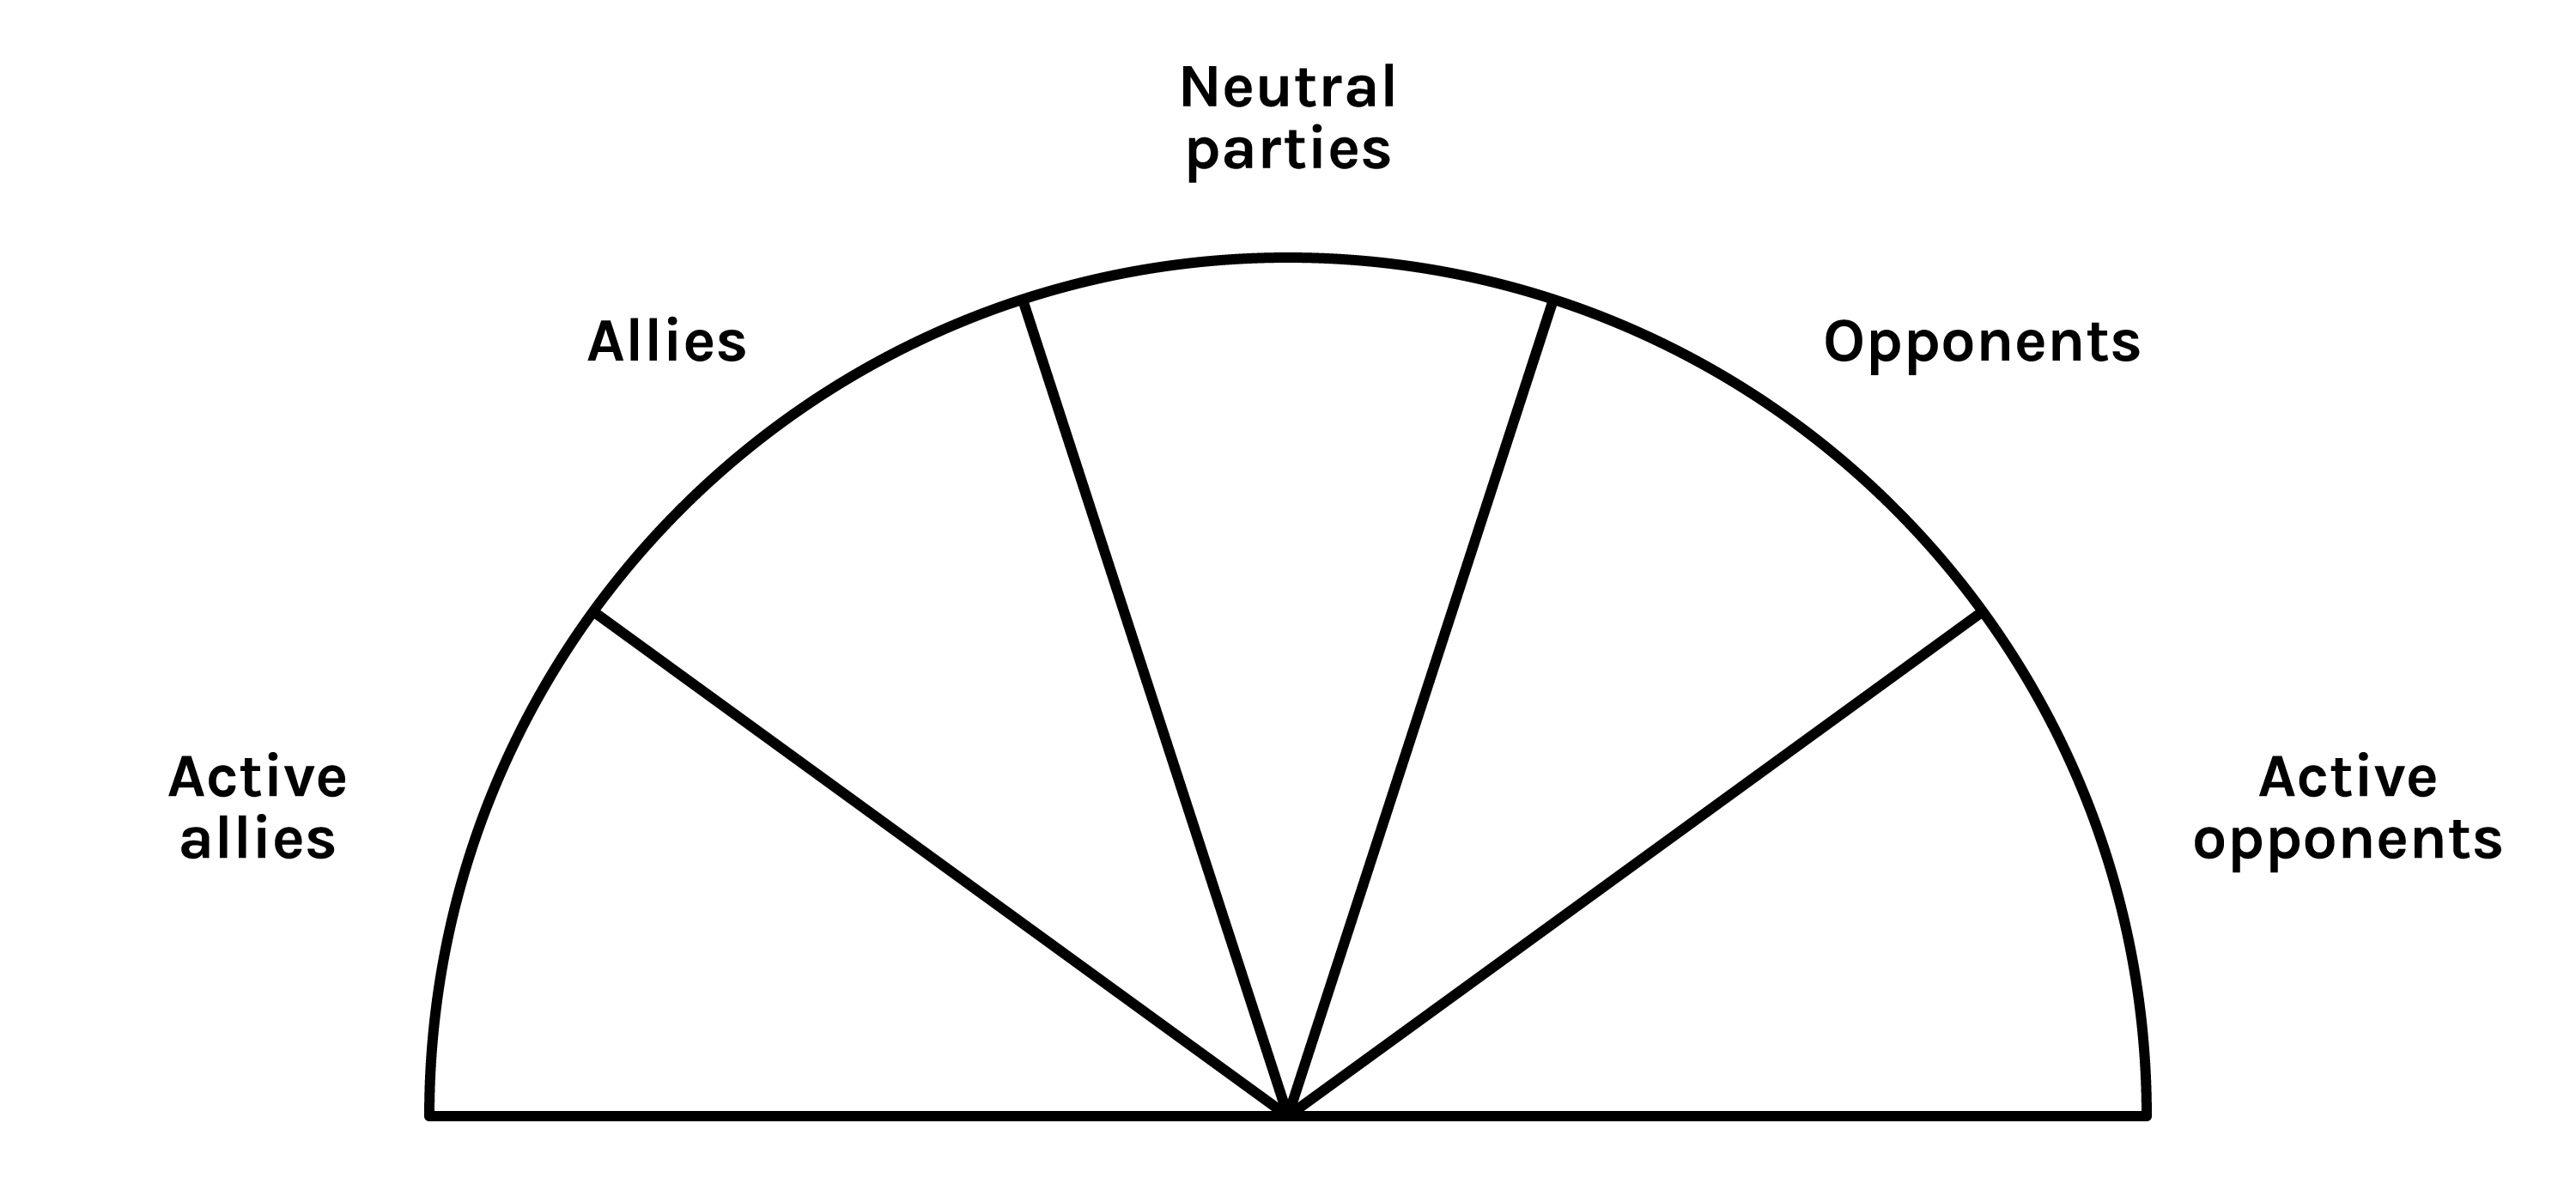 A half-circle, divided into five wedges labelled: Active allies, Allies, Neutral parties, Opponents, Active opponents.